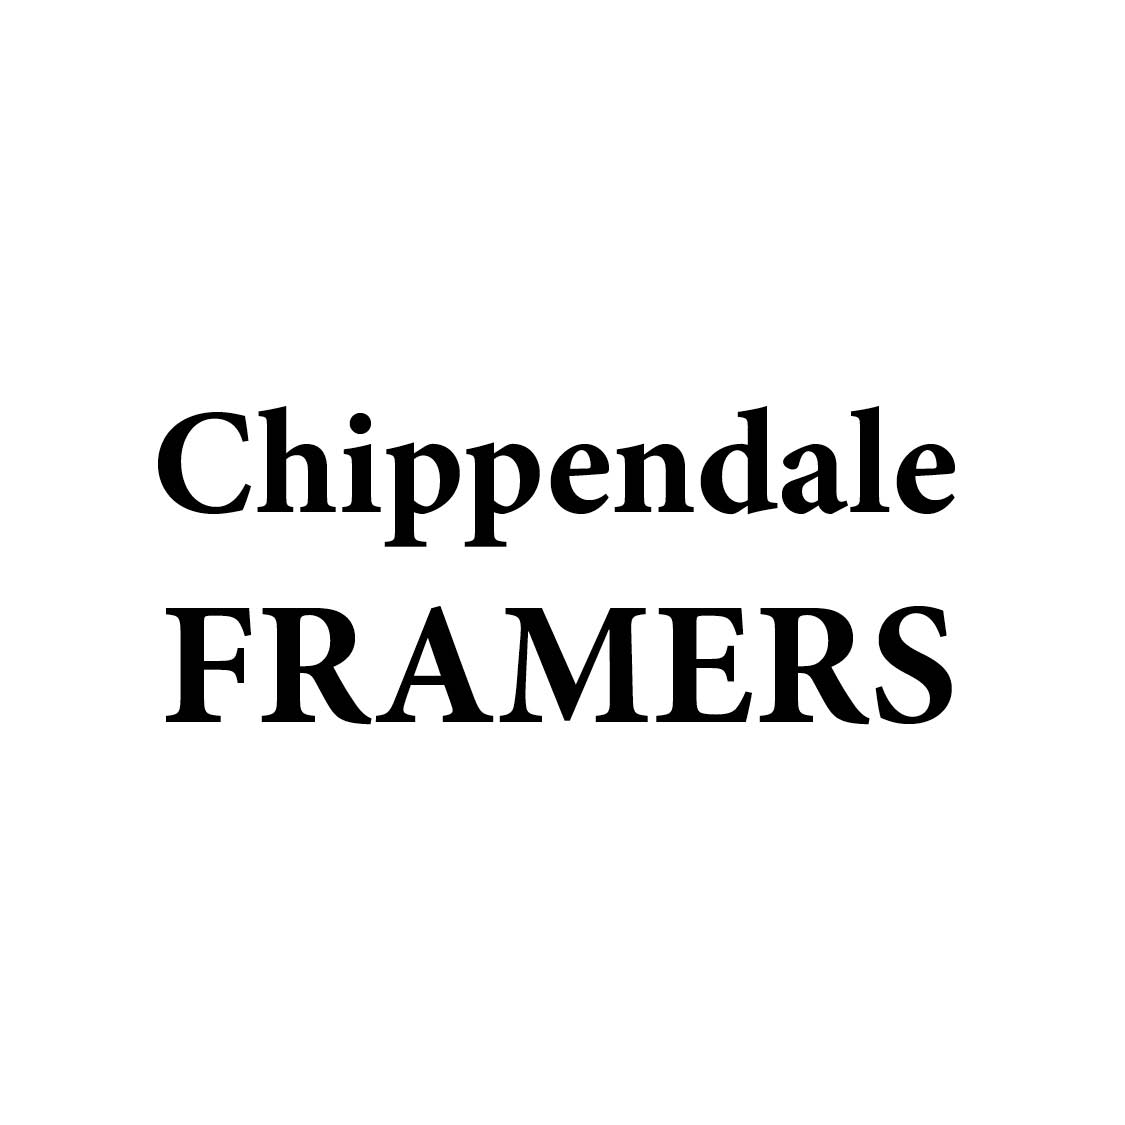 Chippendale Framers